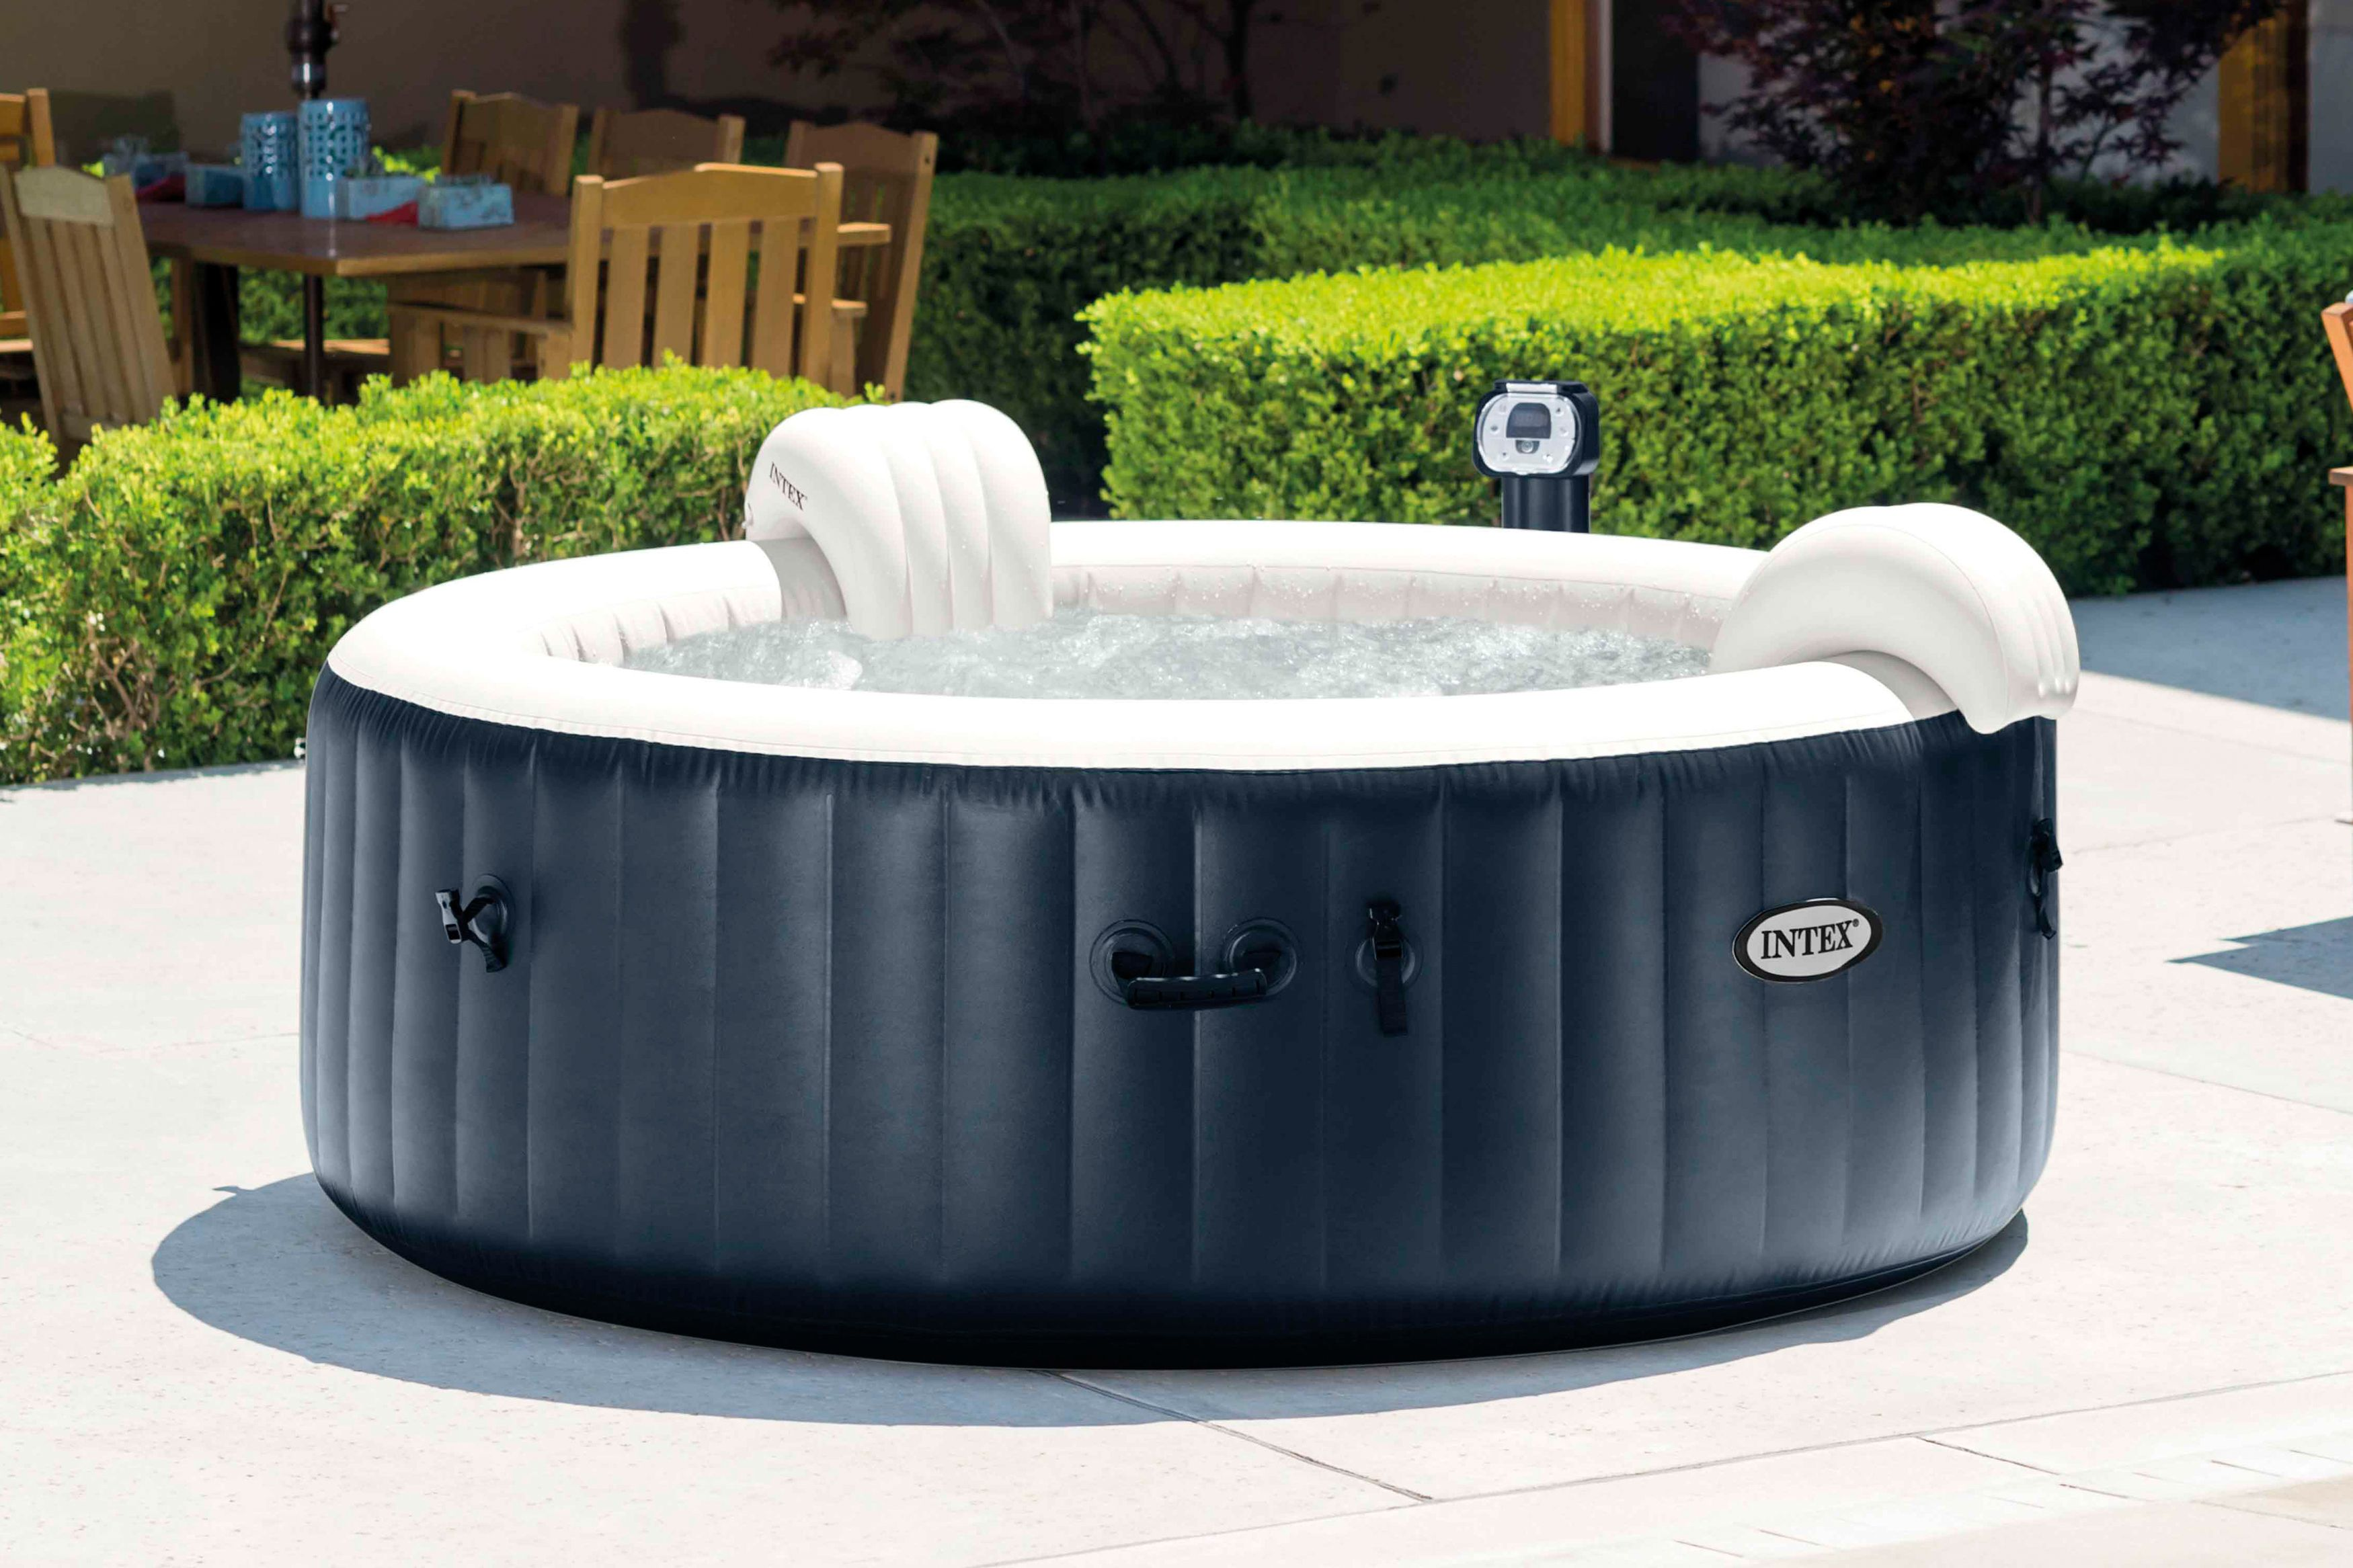 Pin by Tammie Colosimo on outdoor fun | Pinterest | Hot tubs and Tubs